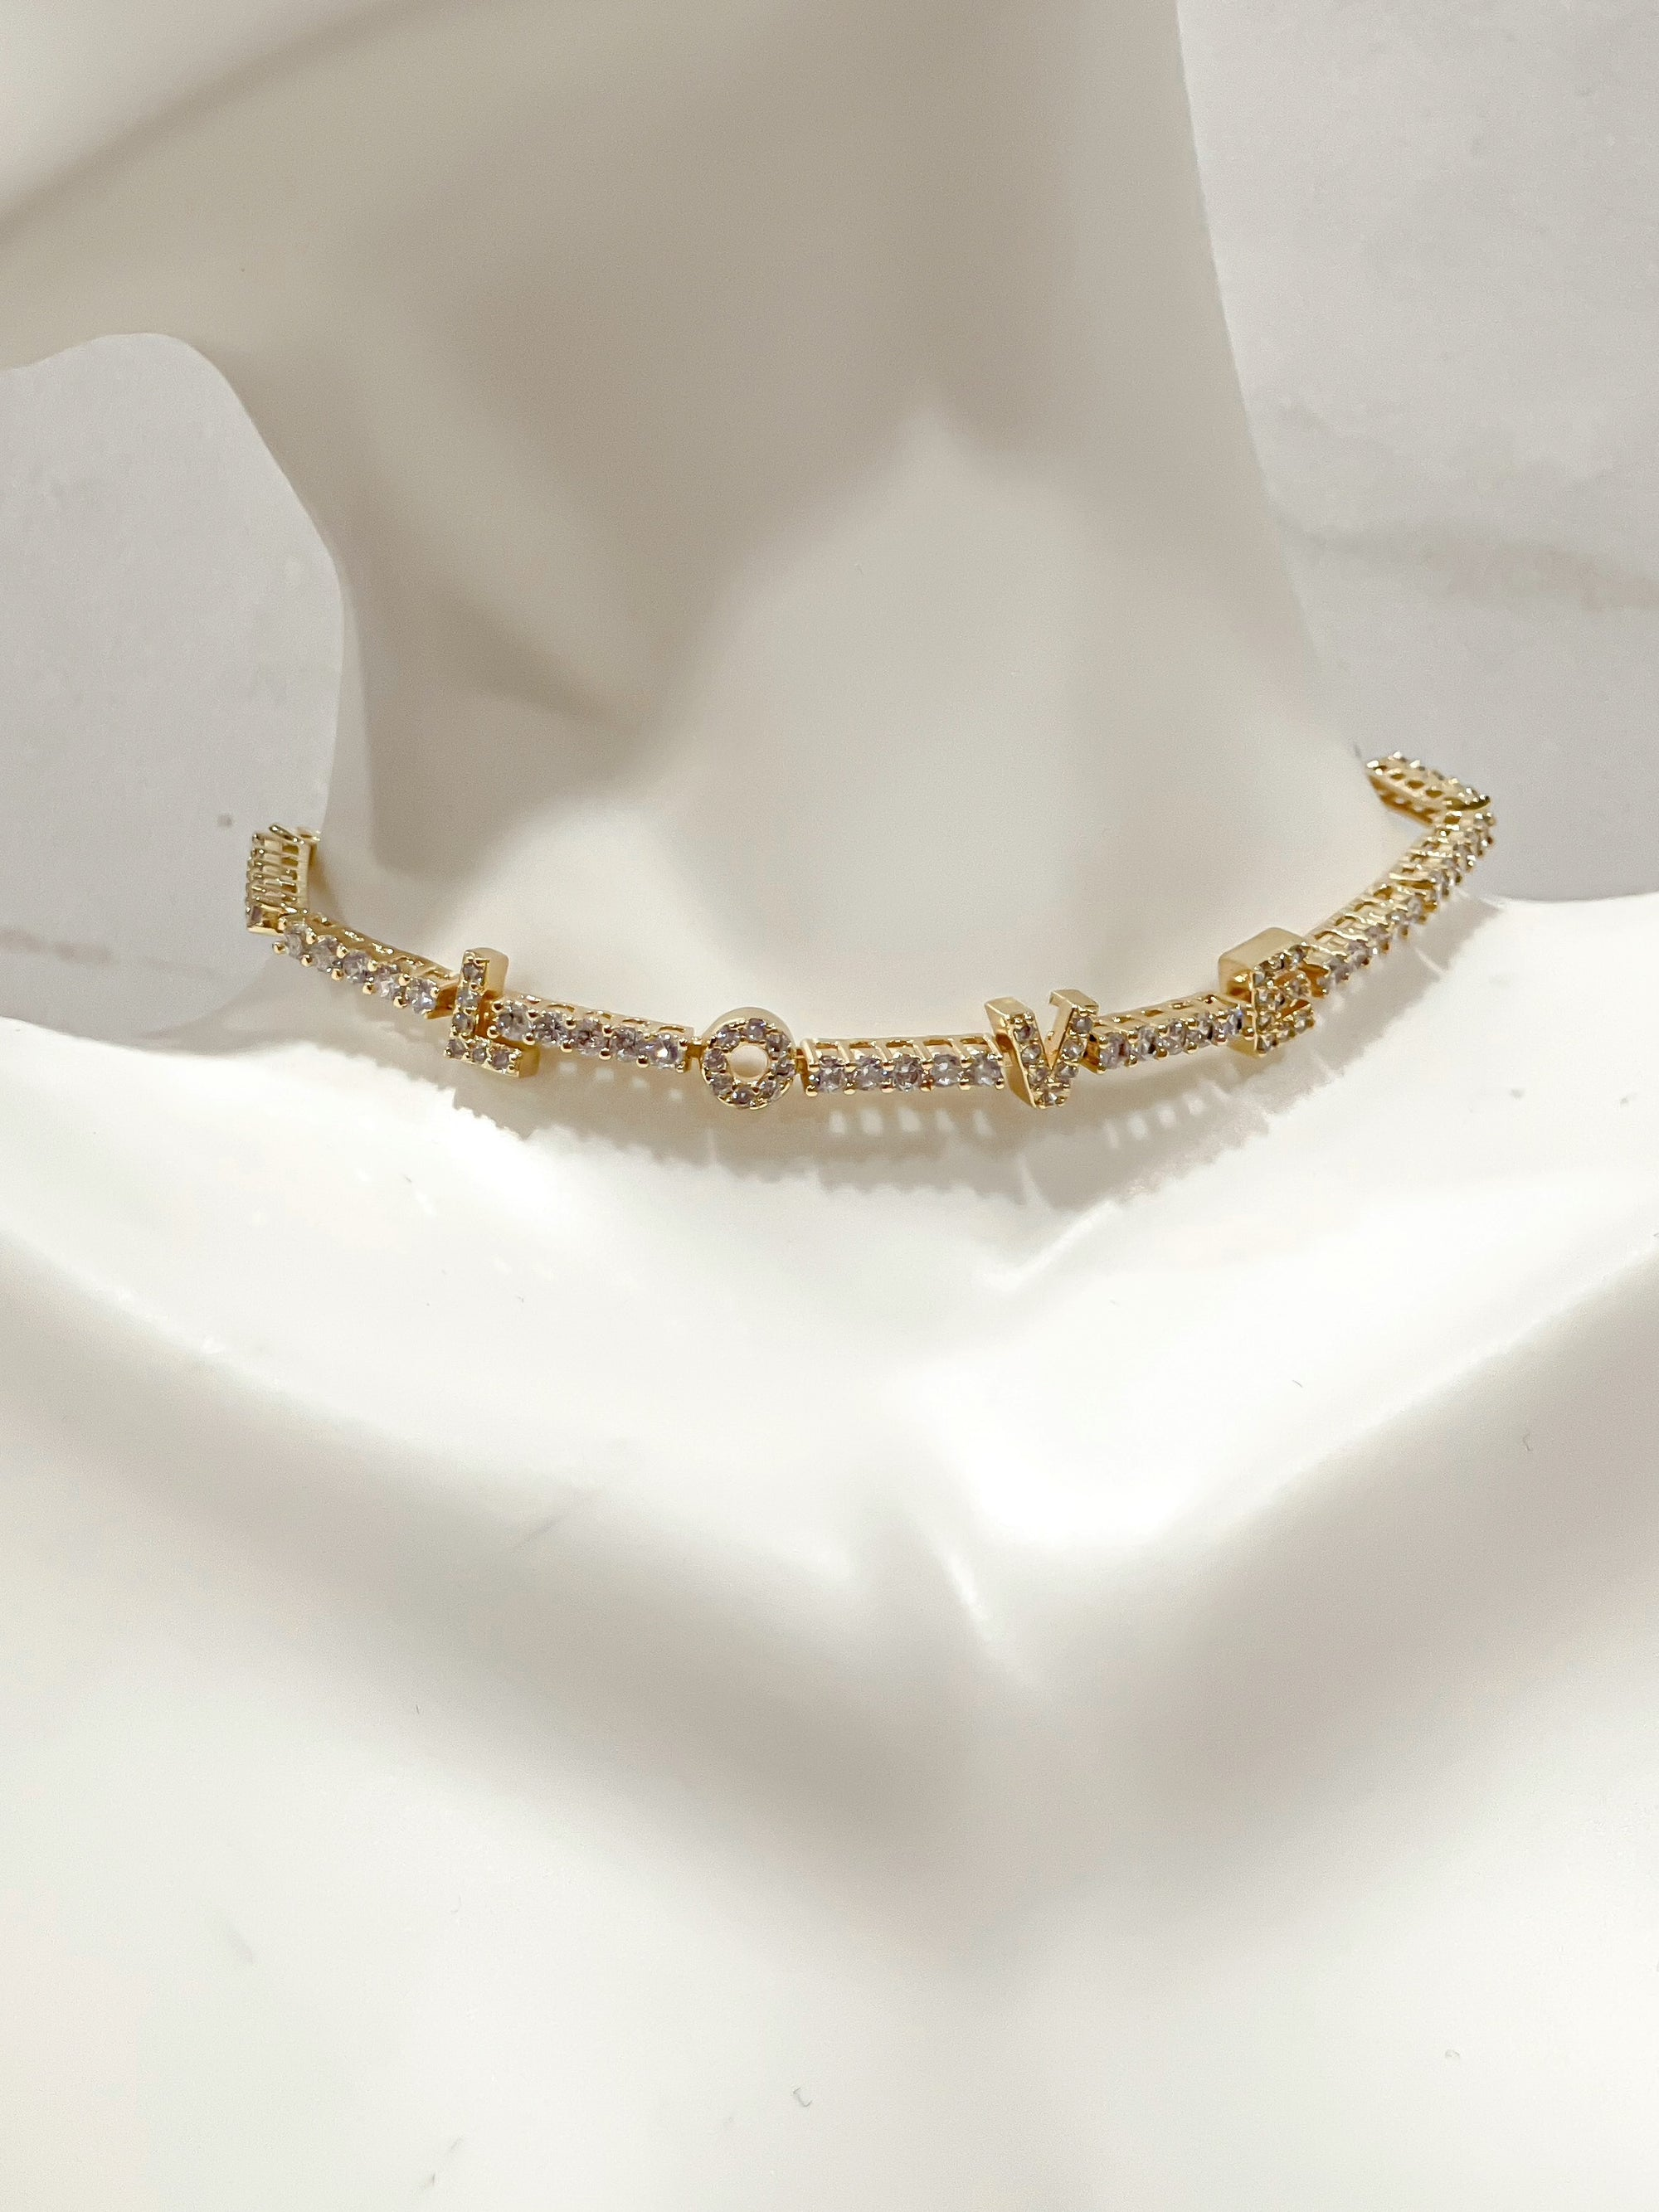 Anaïs Love 18k Gold Plated Bracelet